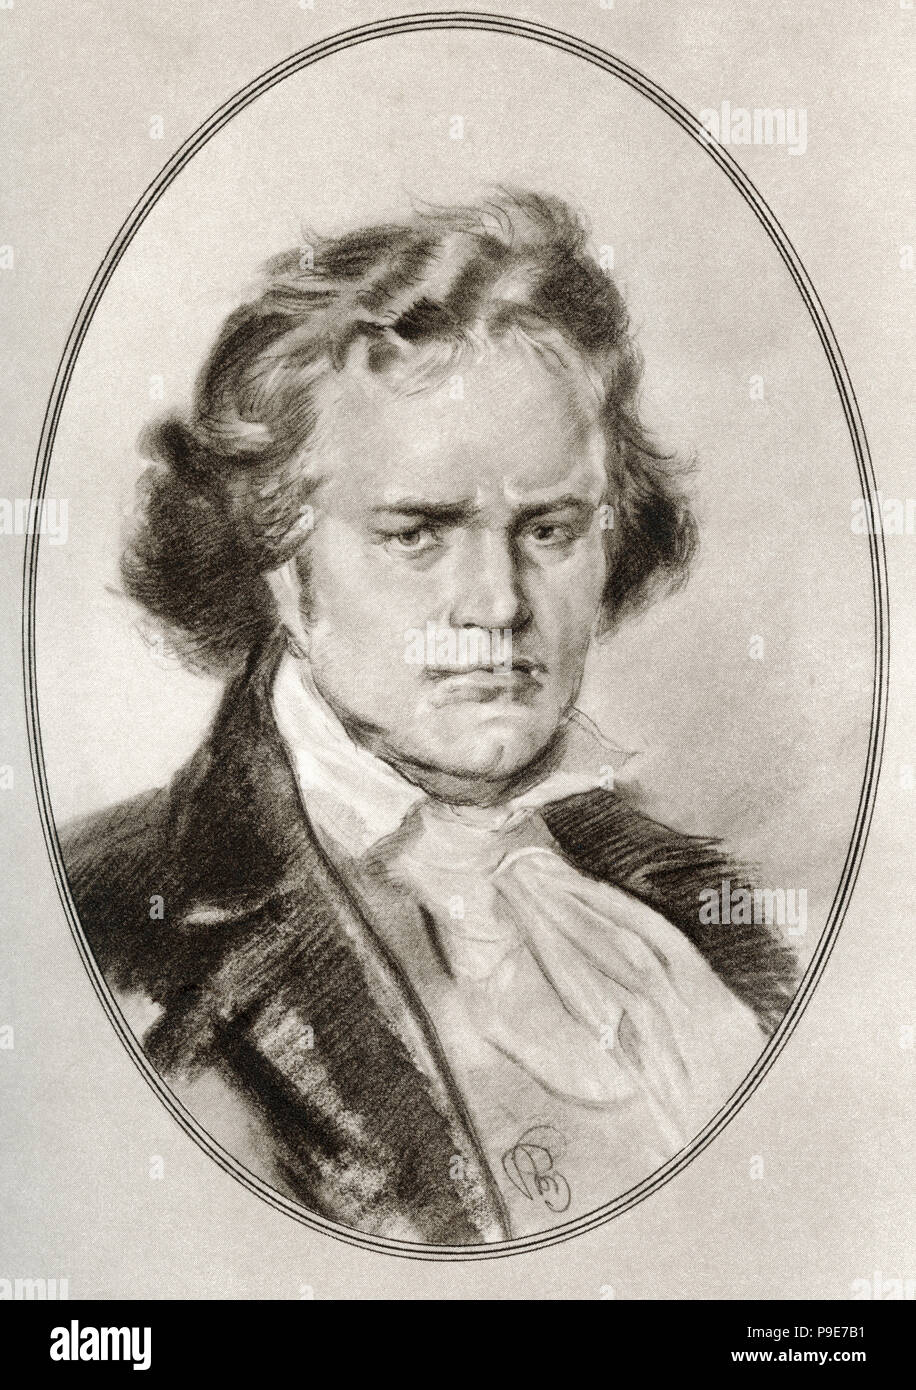 Ludwig van Beethoven, 1770 - 1827.  German composer and pianist.   Illustration by Gordon Ross, American artist and illustrator (1873-1946), from Living Biographies of Great Composers. - Stock Image